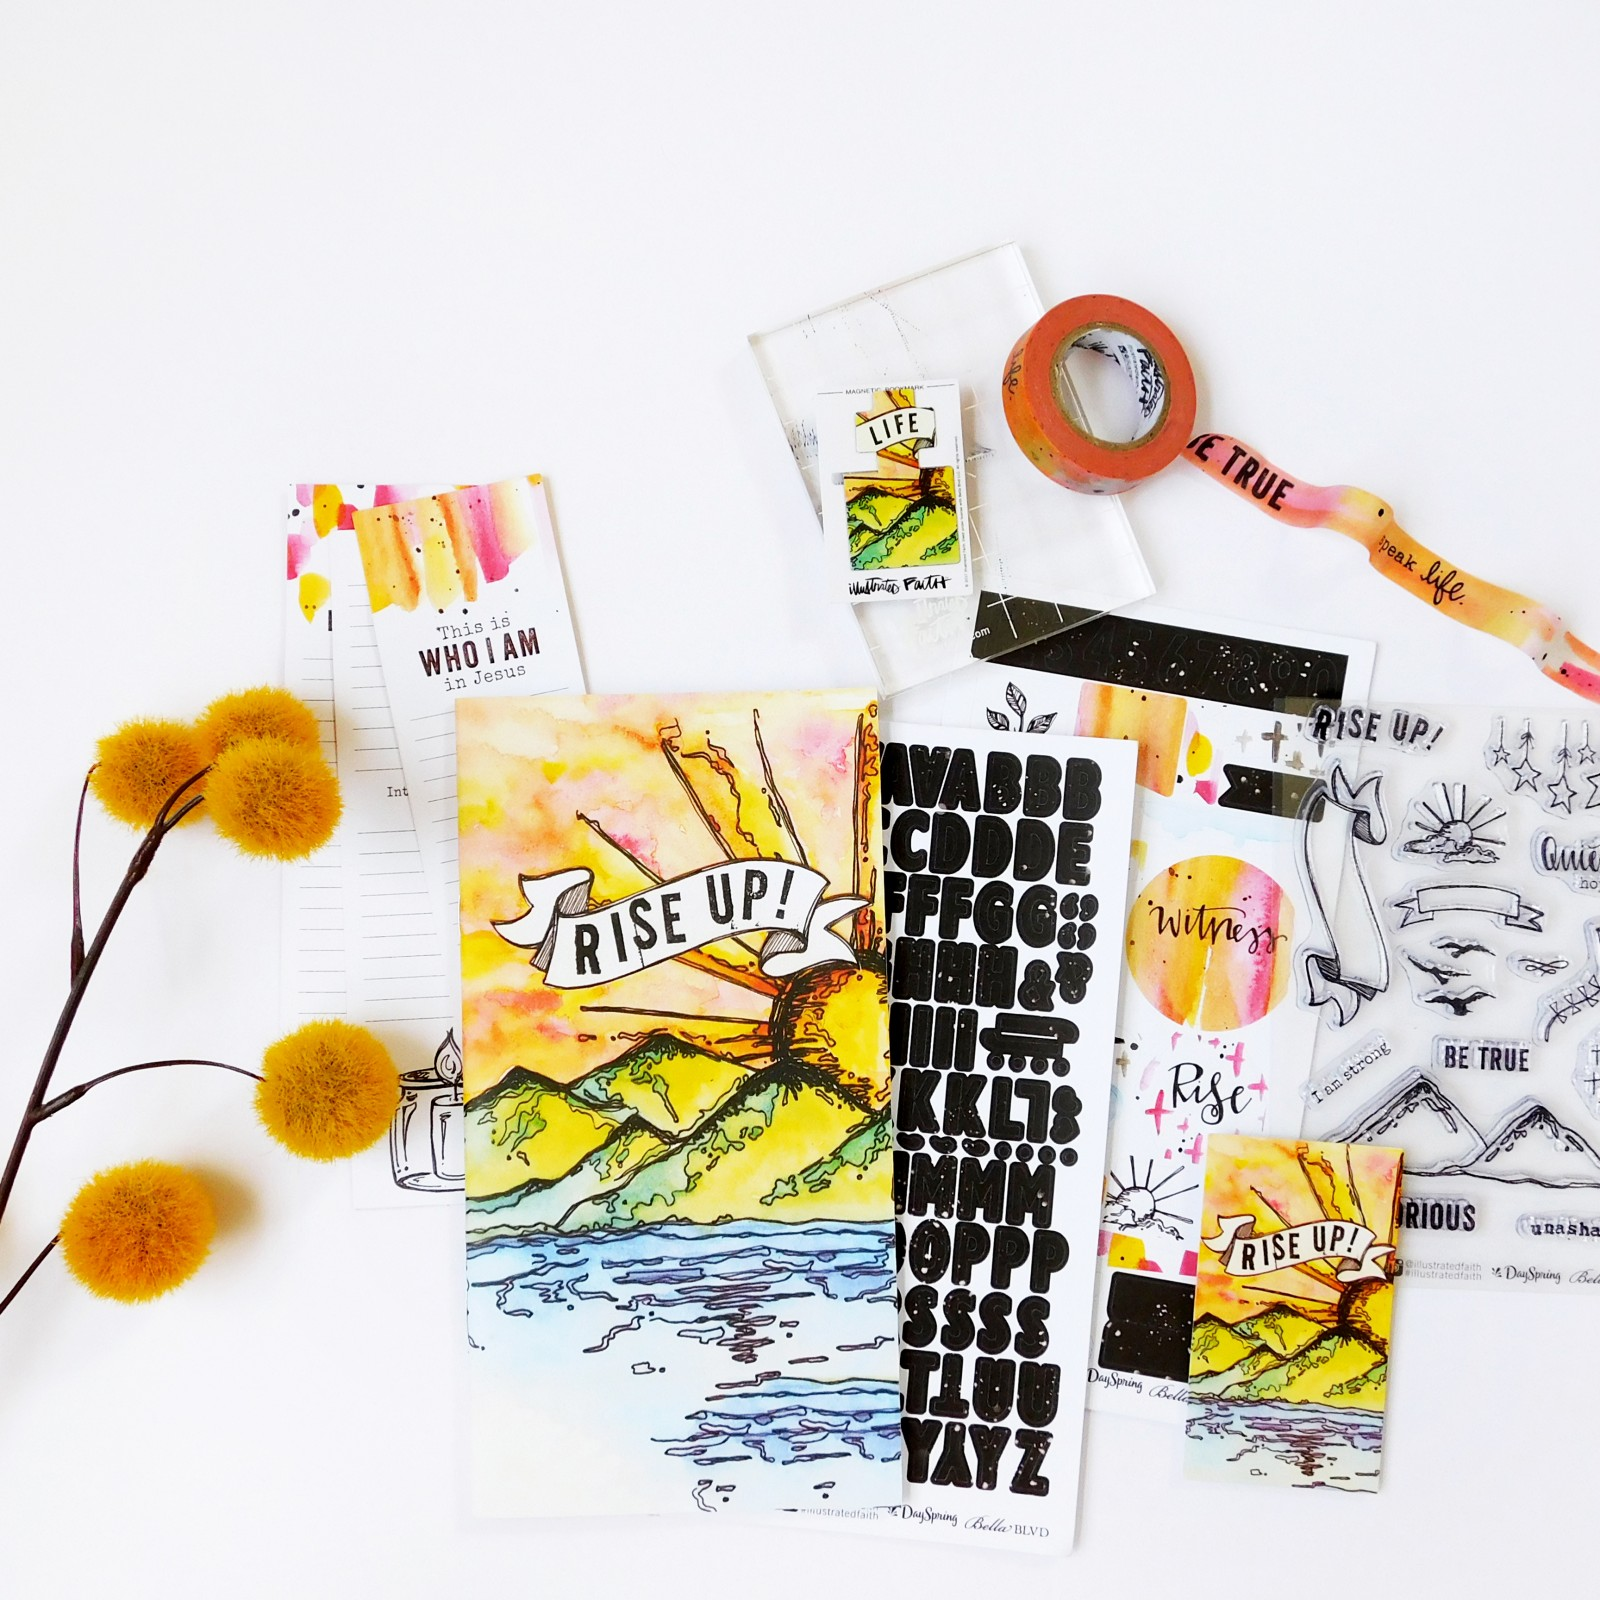 mixed media bible art journaling process video by Shanna Noel using the Rise Up! Devotional Kit